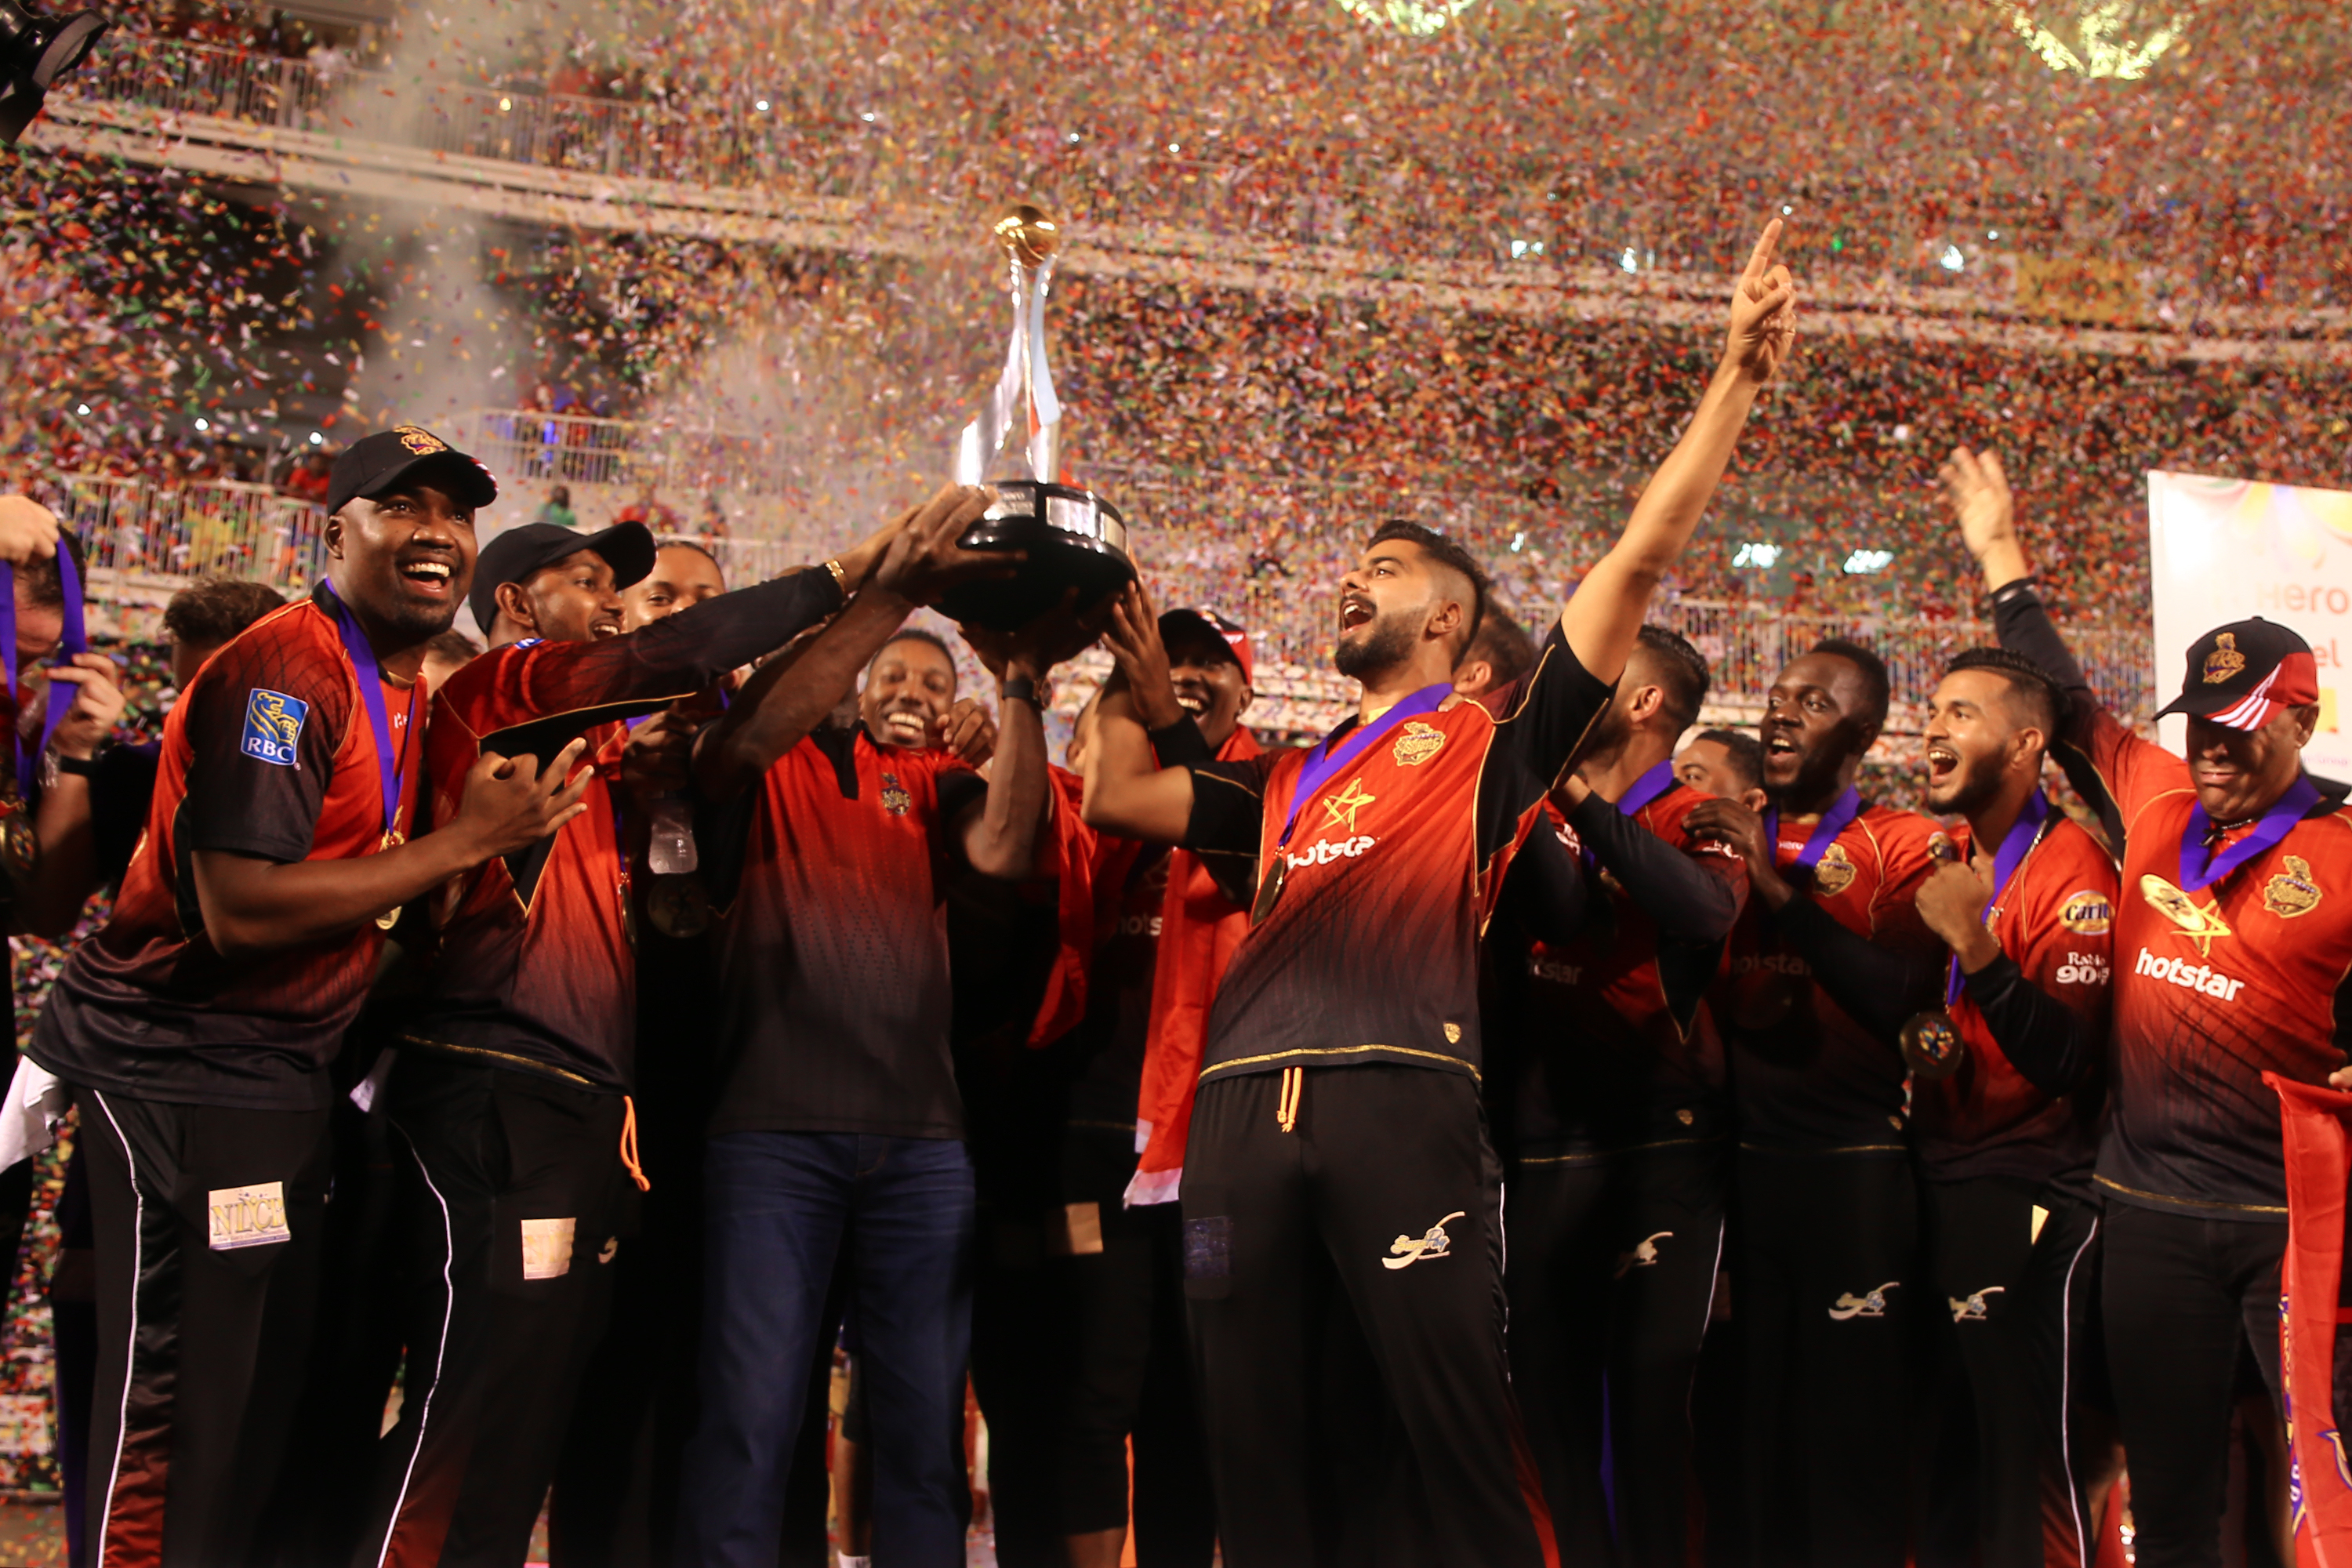 Trinbago Knight Riders stamped their authority as one of the most successful franchise in the world | Getty